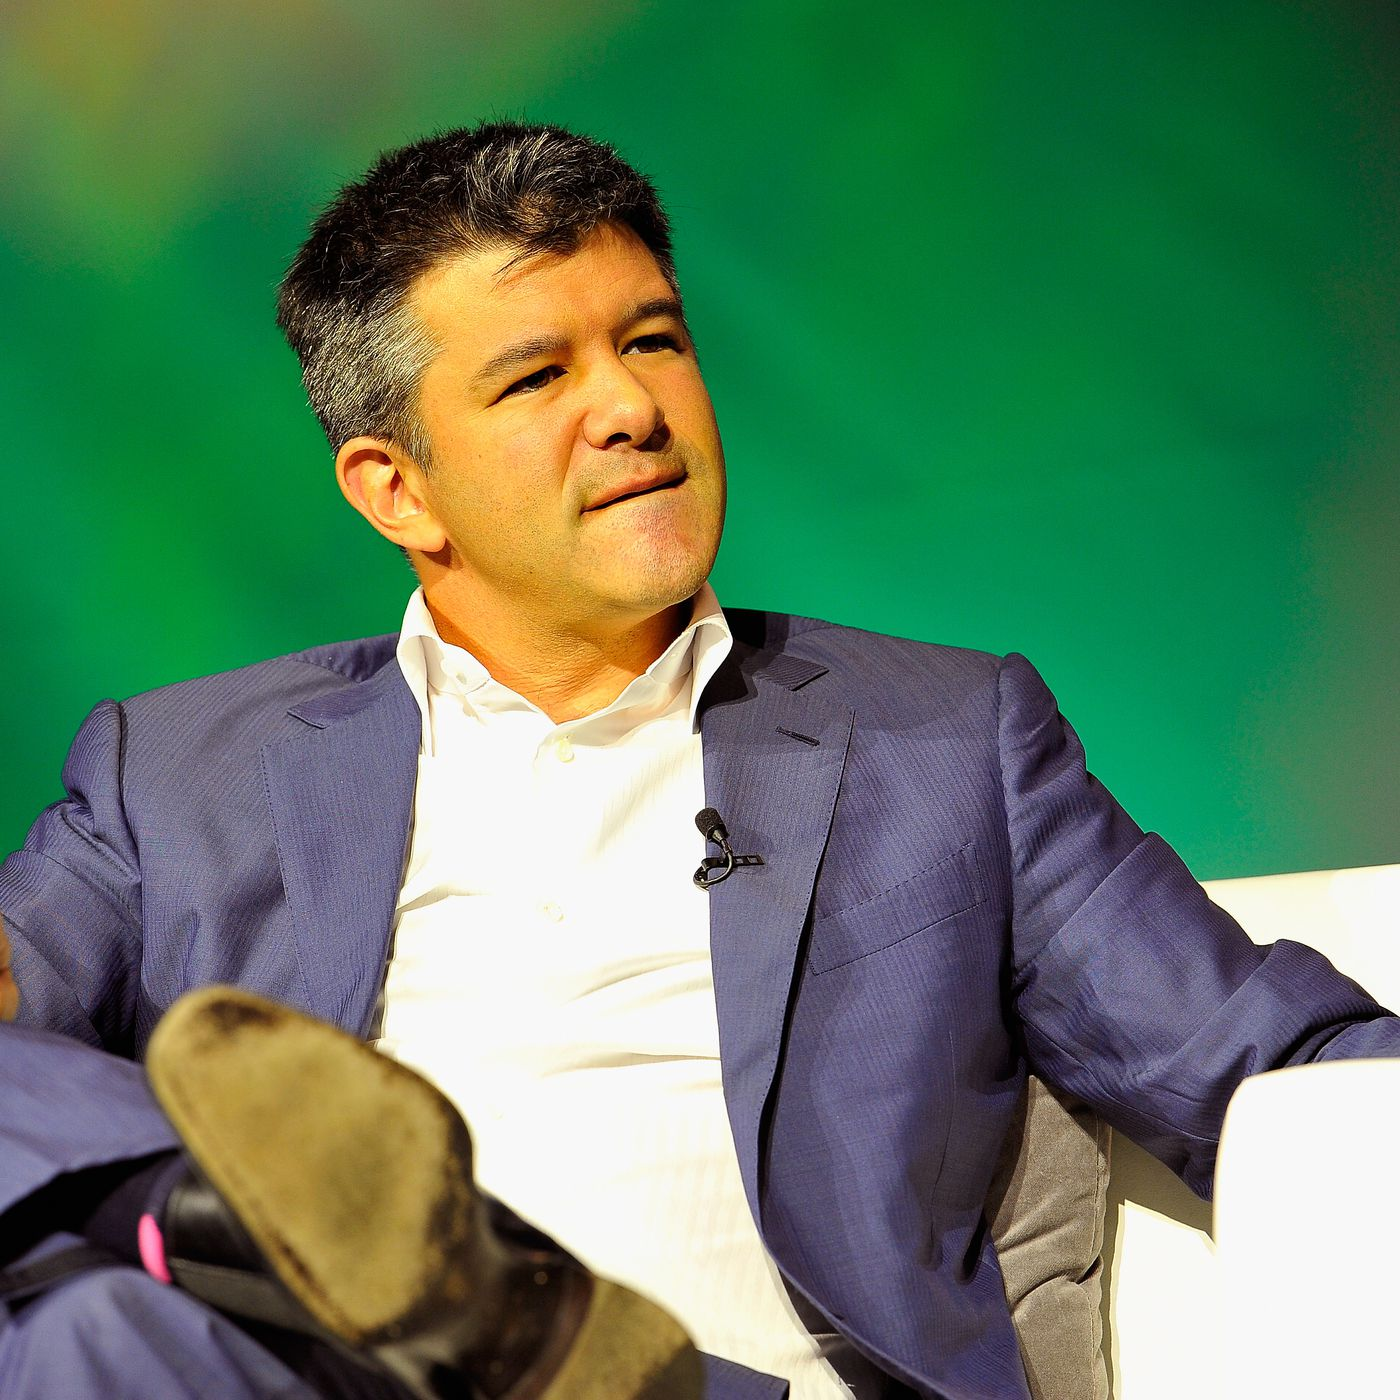 uber ceo kalanick advised employees on sex rules for a company celebration in 2013 miami letter vox uber ceo kalanick advised employees on